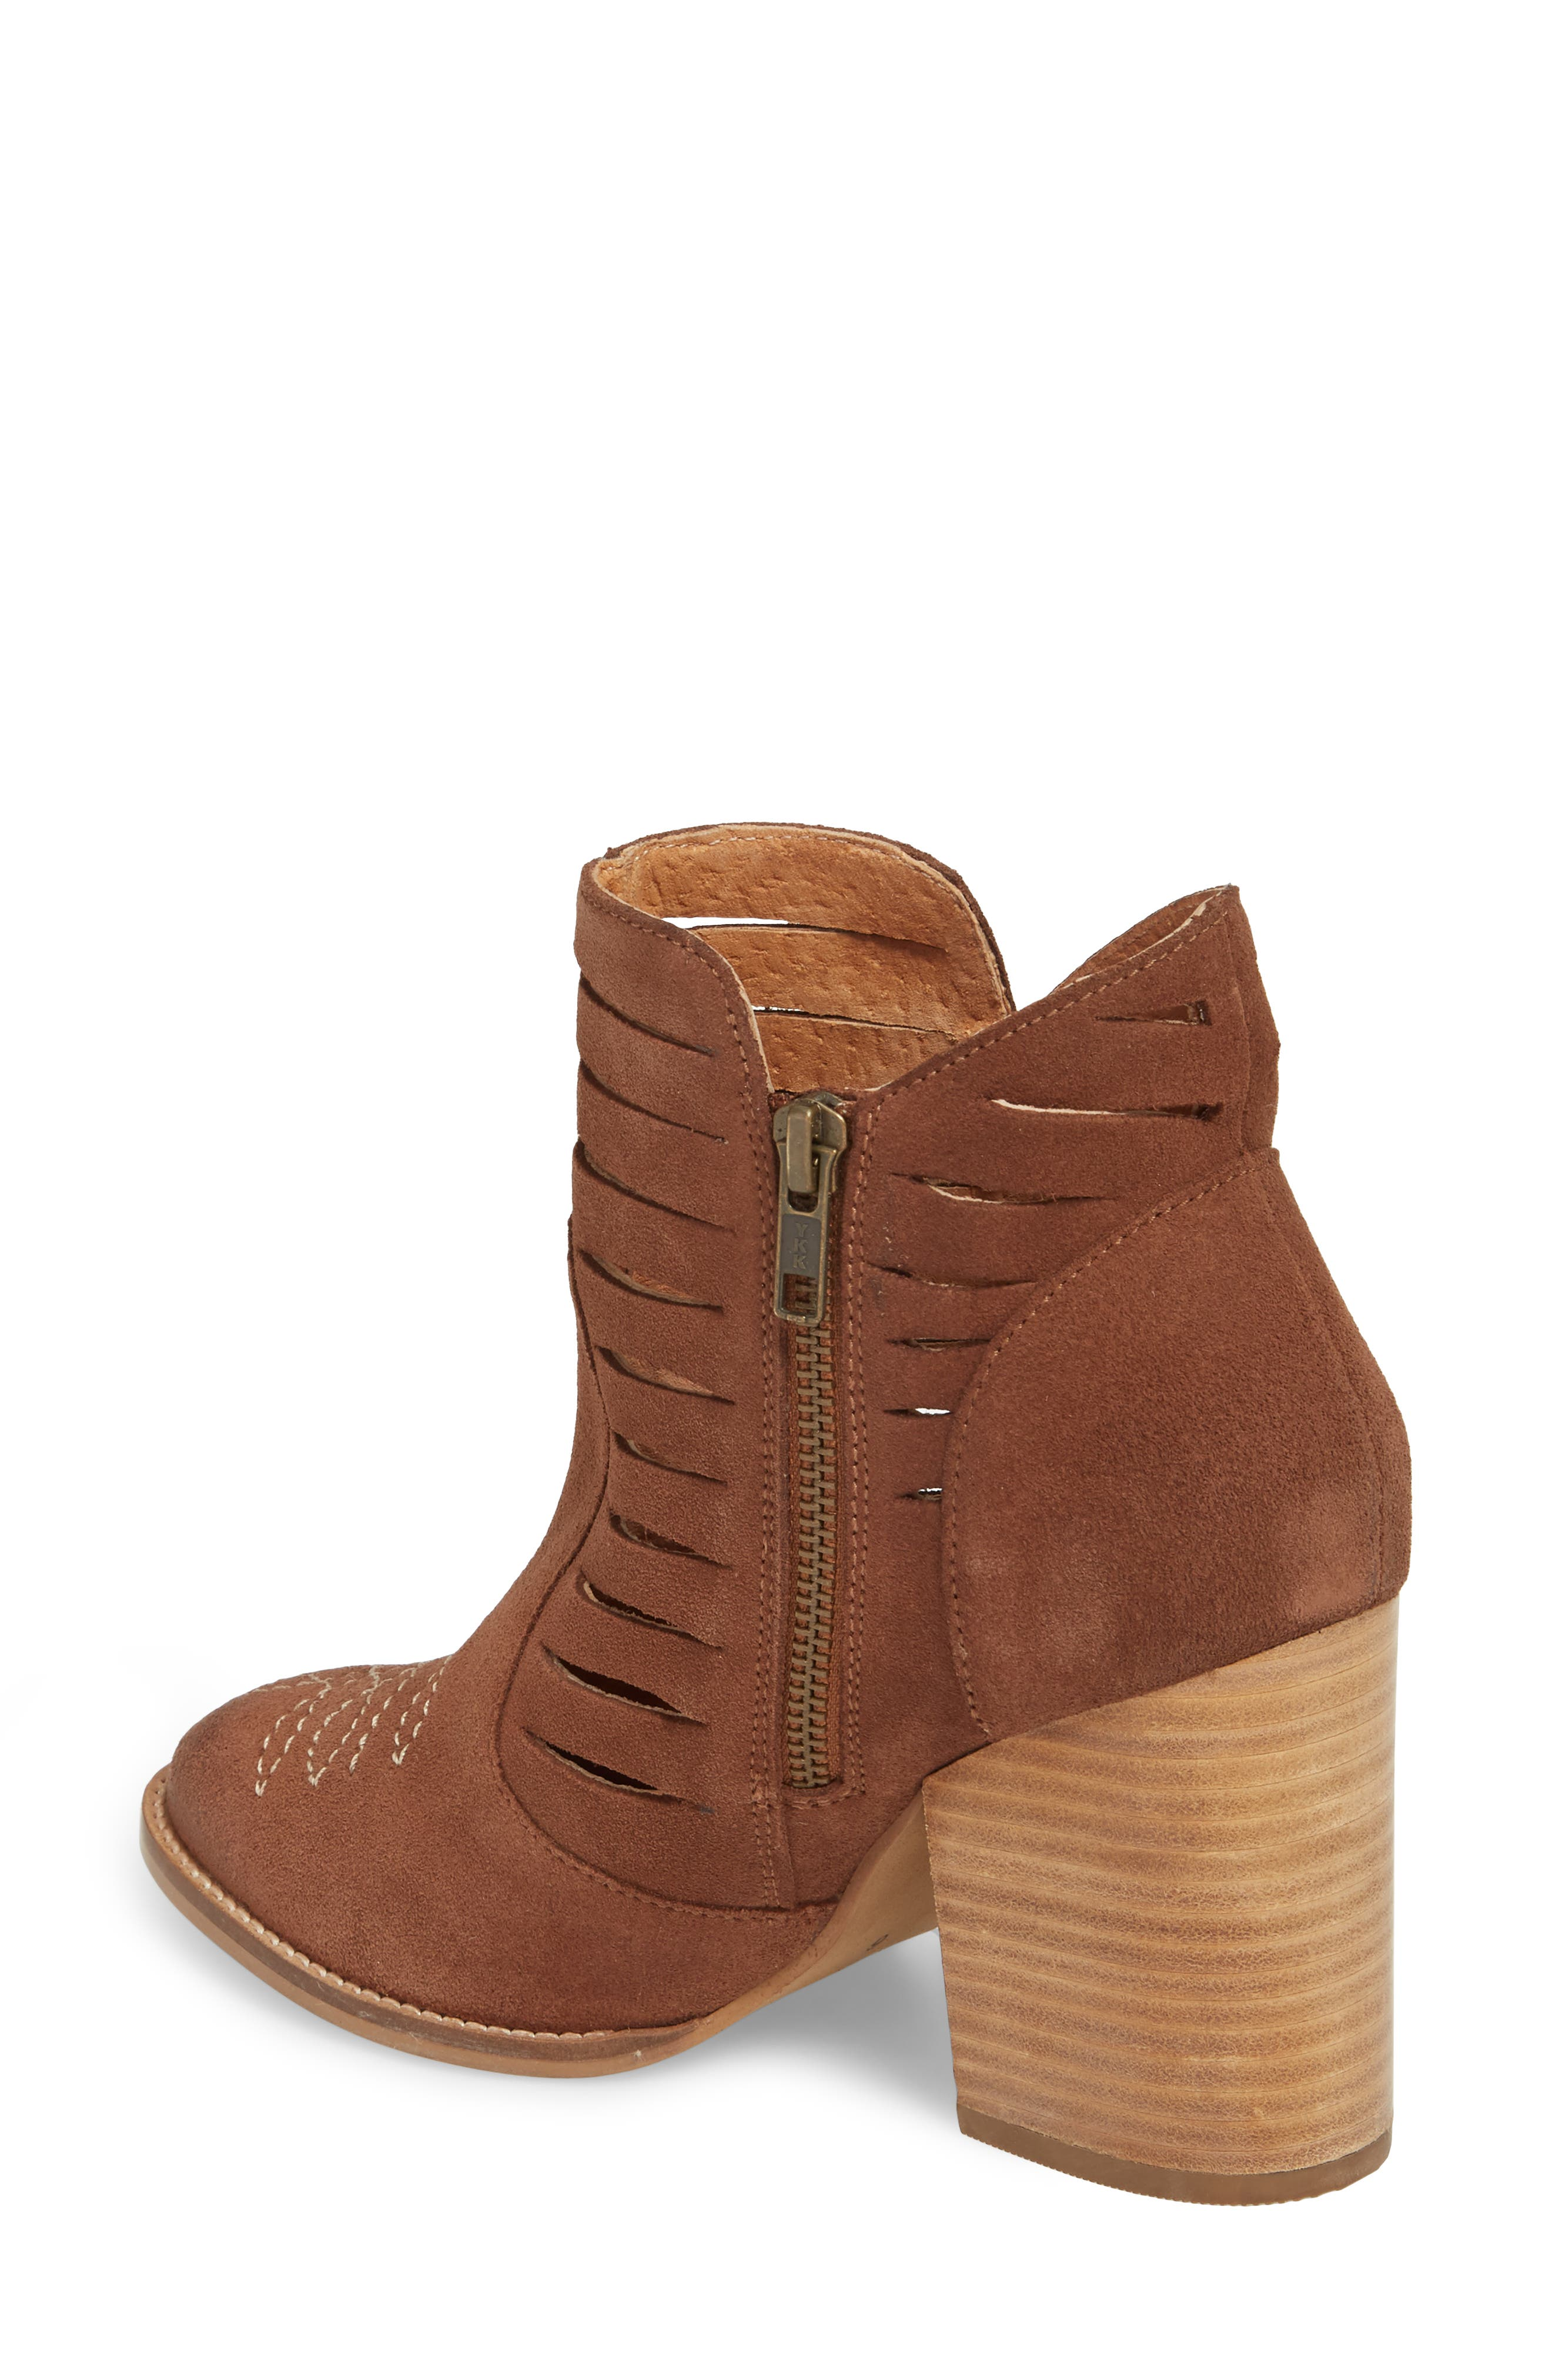 Adriana Western Bootie,                             Alternate thumbnail 2, color,                             Whiskey Suede